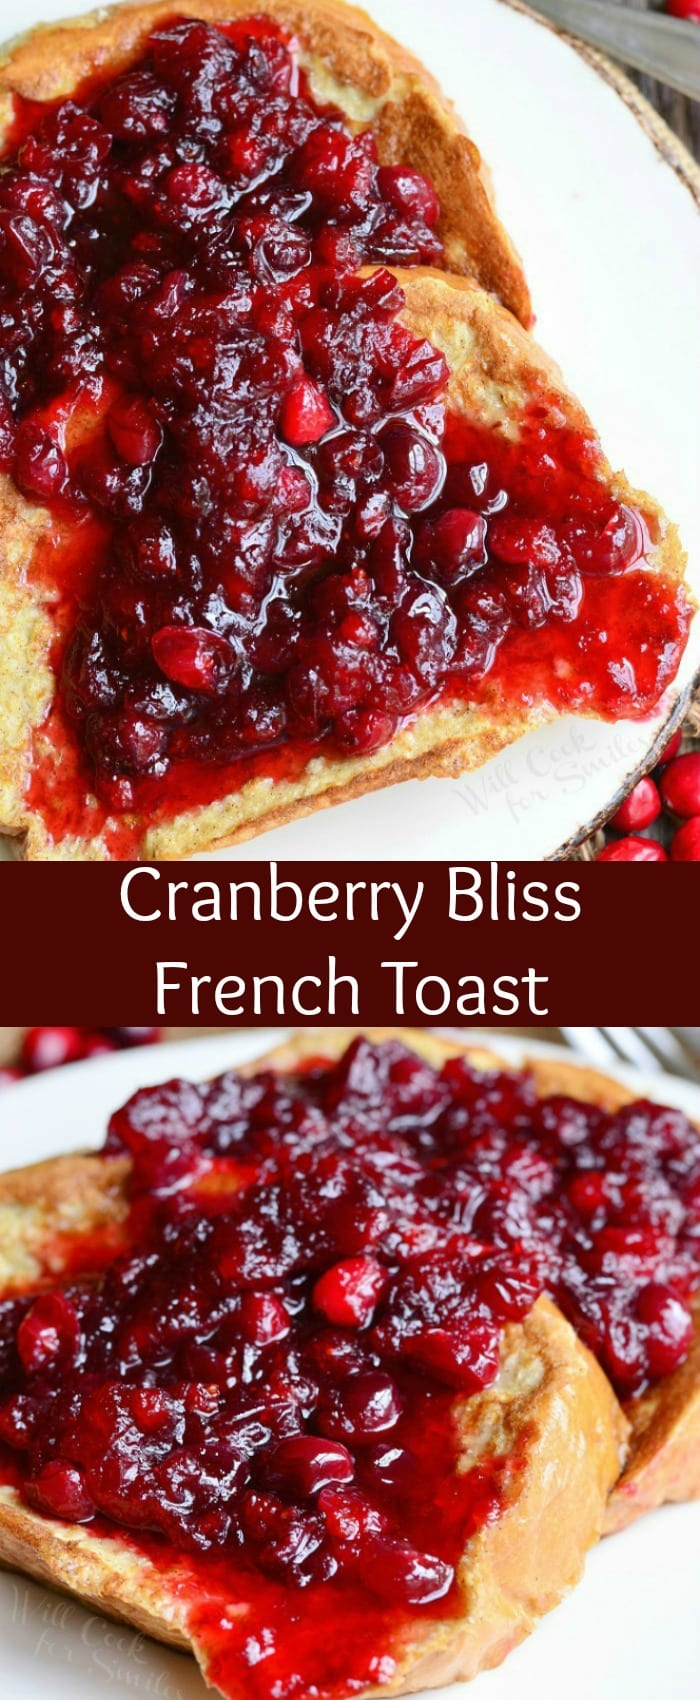 Cranberry Bliss French Toast. Beautiful French Toast dish that would be absolutely perfect for a holiday breakfast and brunch. Tasty slices of French Toast covered with sweet, fresh cranberry compote. #breakfast #cranberry #frenchtoast #homemade #bread #brunch #holiday